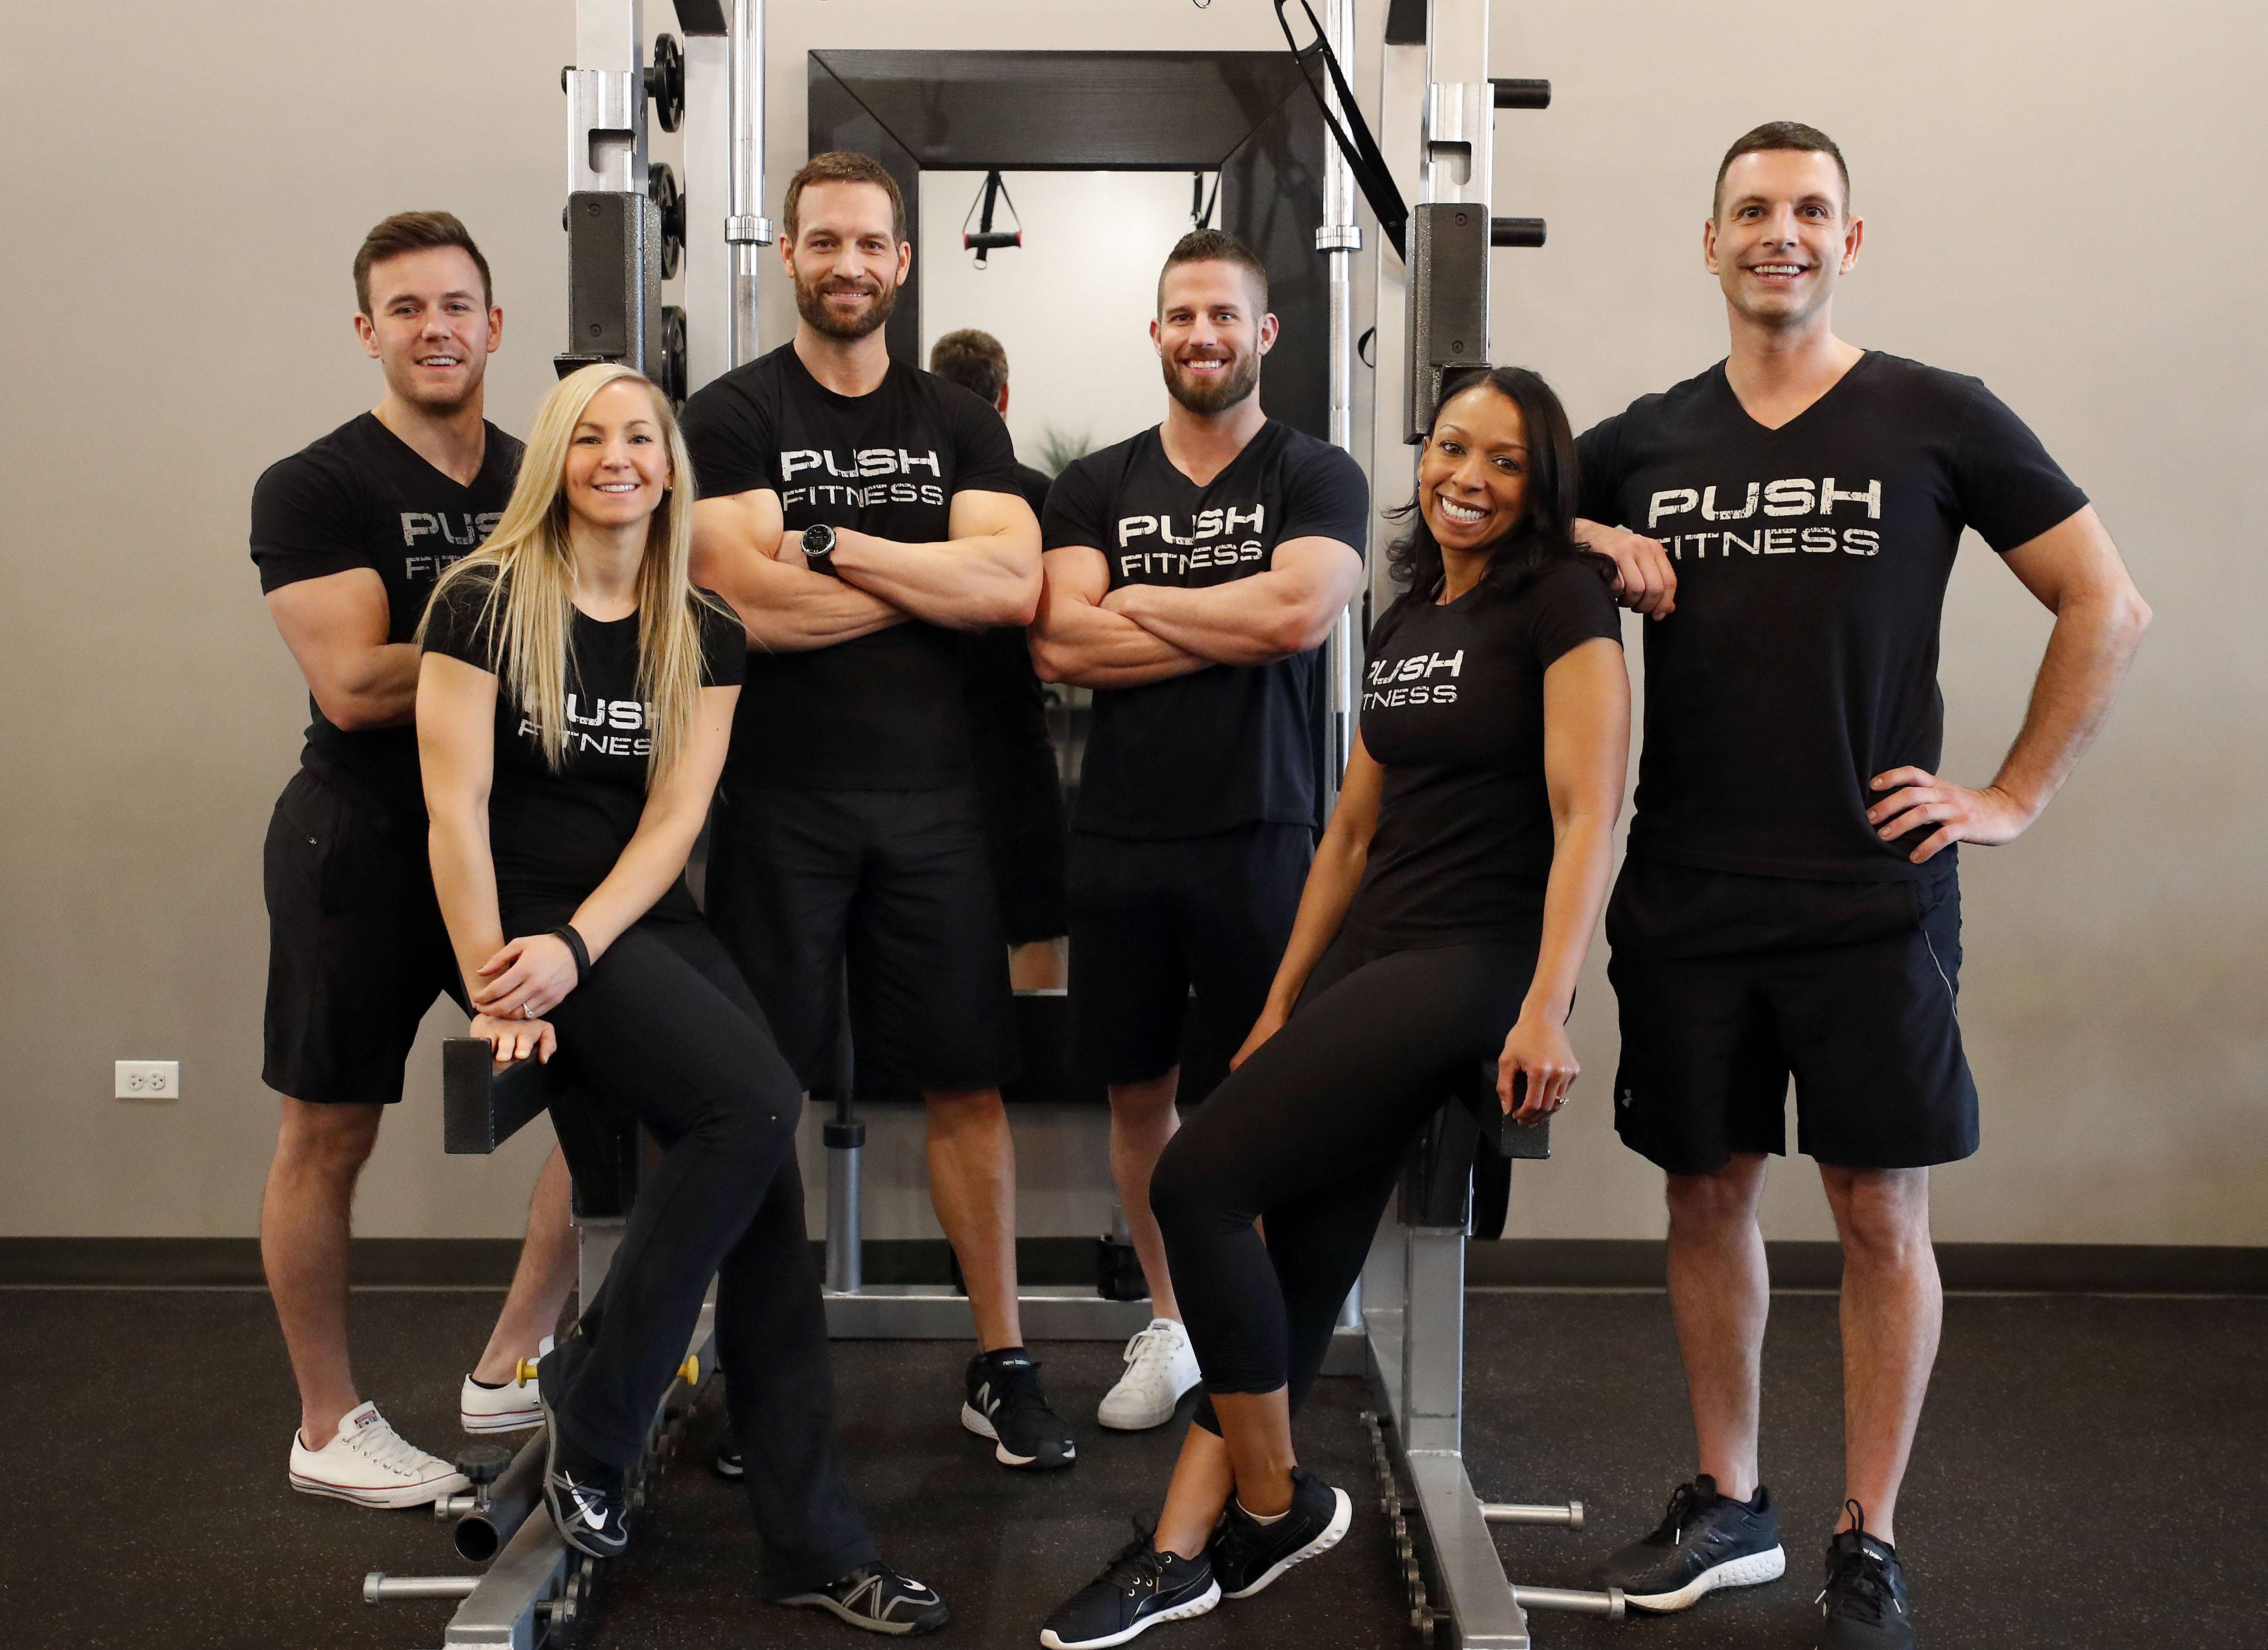 Fittest Loser trainers Patrick Stille, from left, Nicole Steinbach, Joshua Steckler, Mick Viken, Michelle Jeeninga and Steve Amsden.